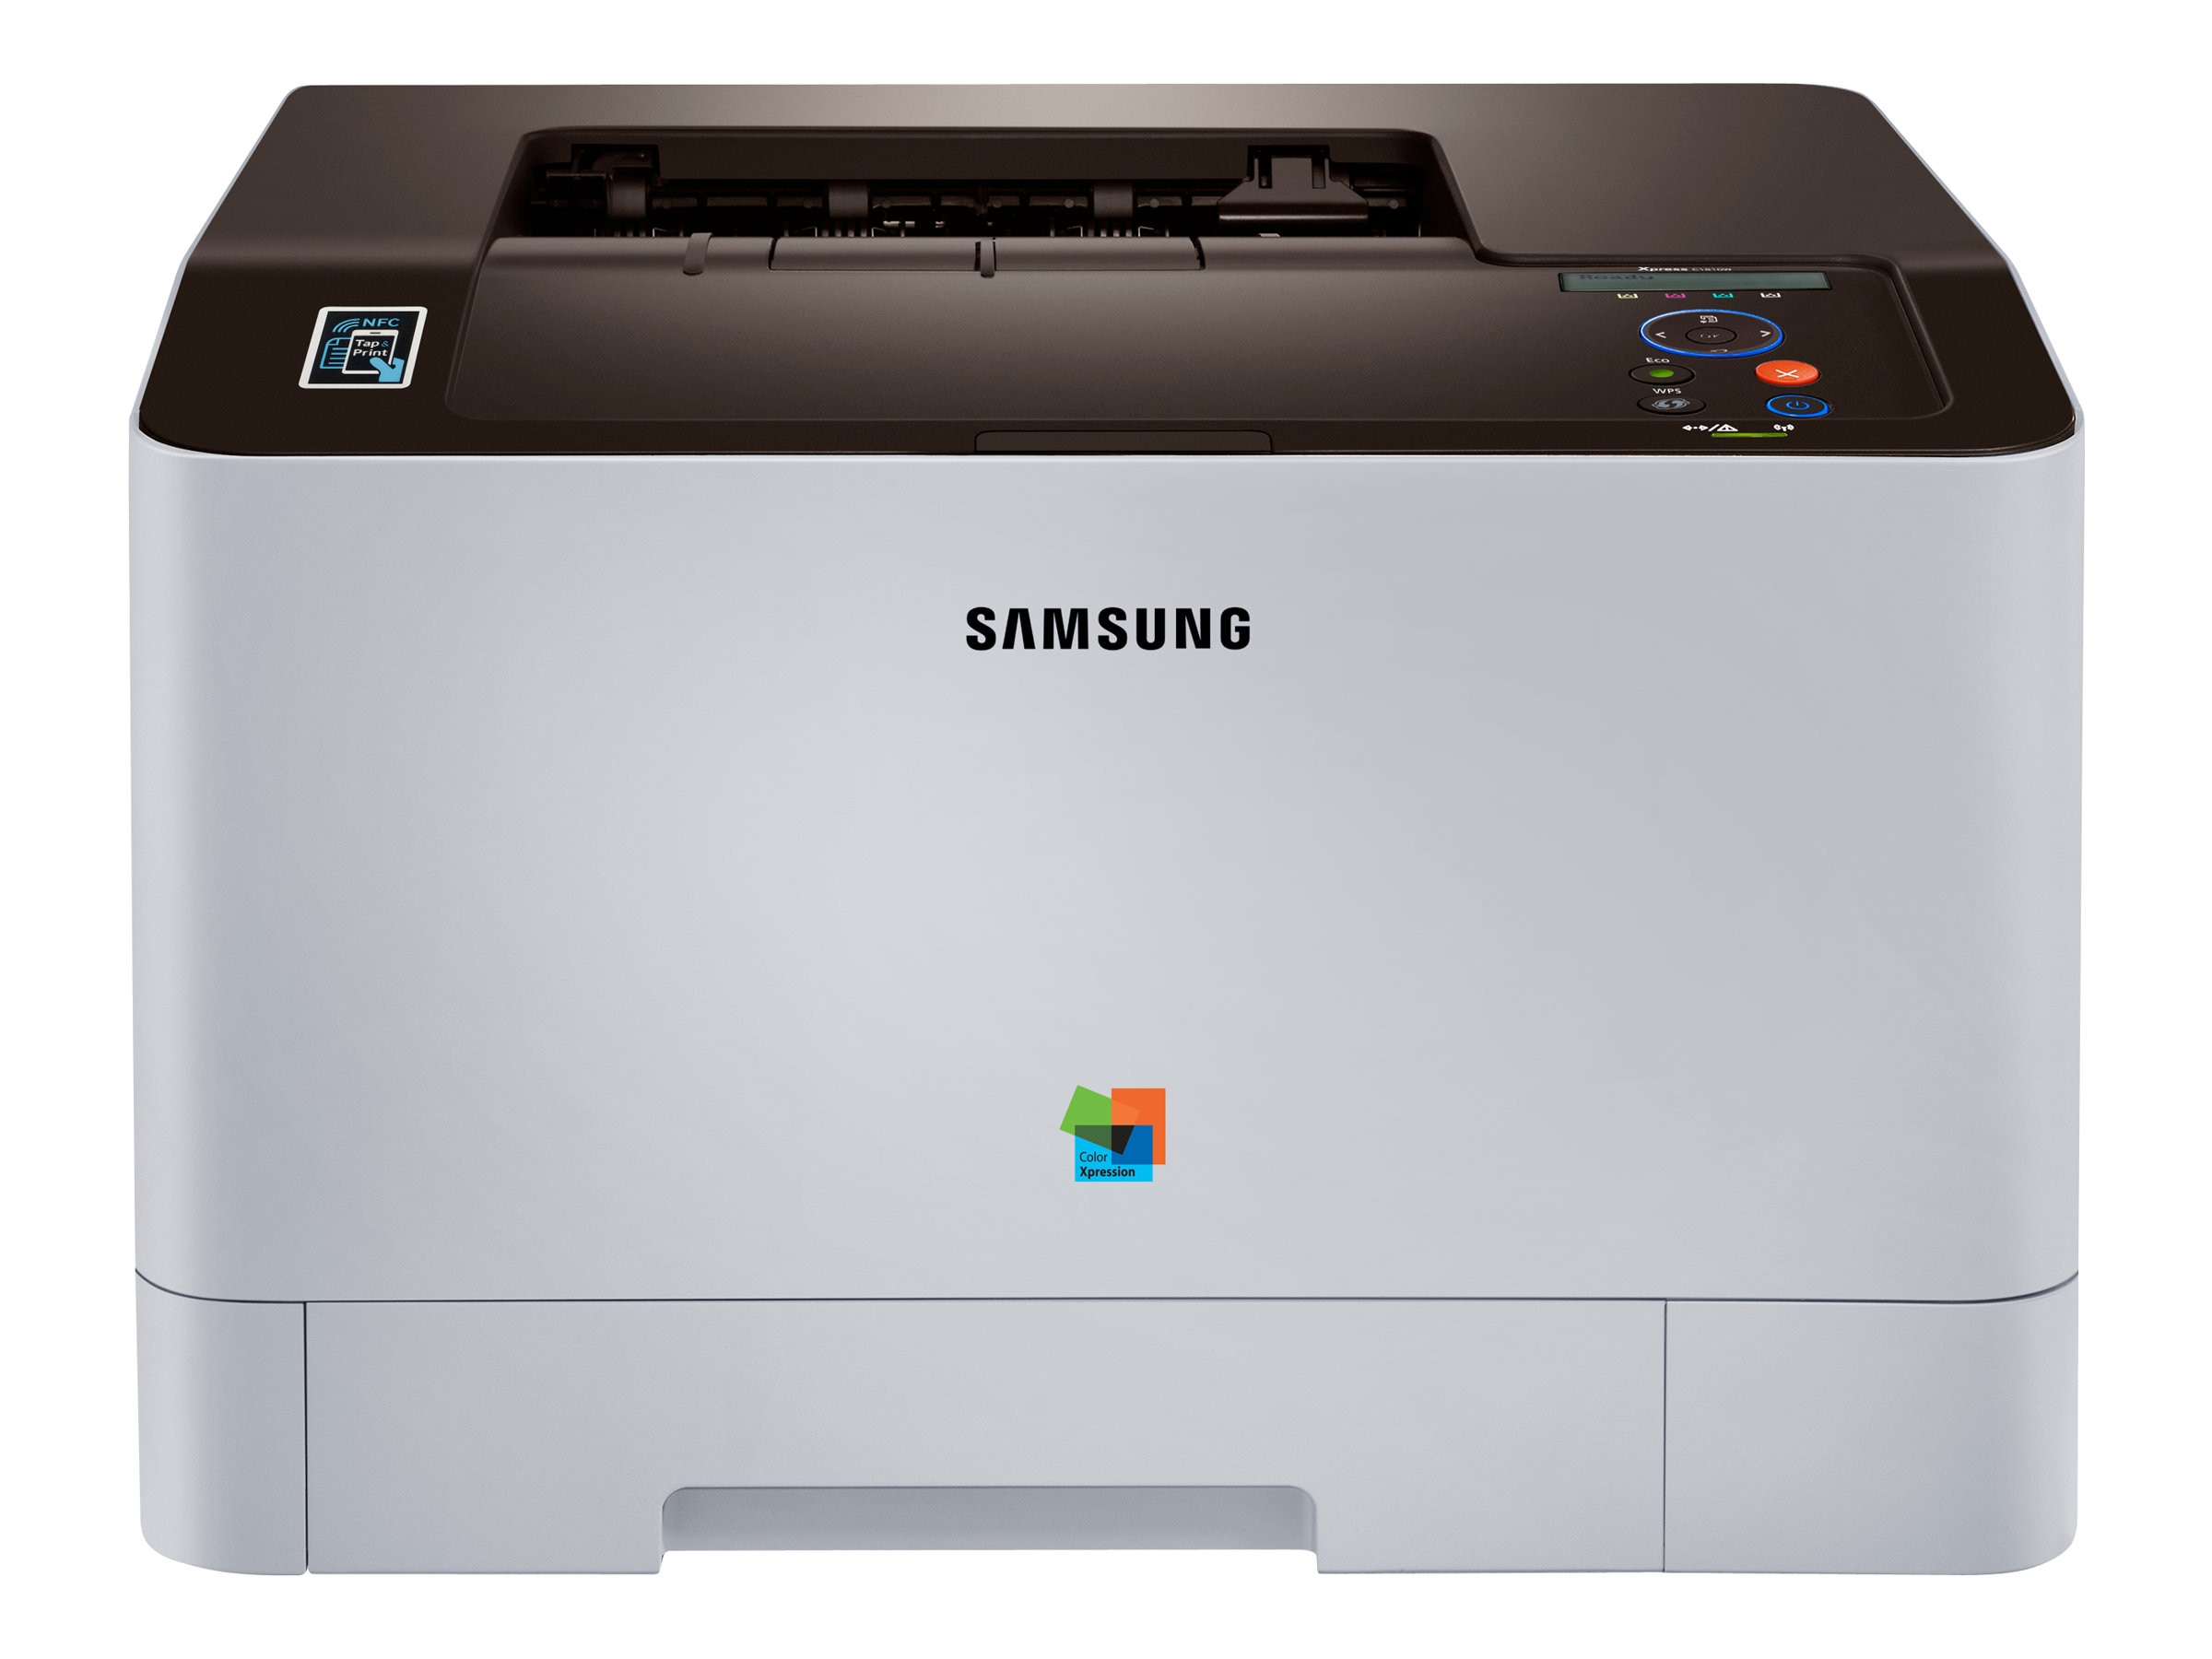 Samsung Xpress C1810W Color Laser Printer, SL-C1810W/XAA, 17059463, Printers - Laser & LED (color)